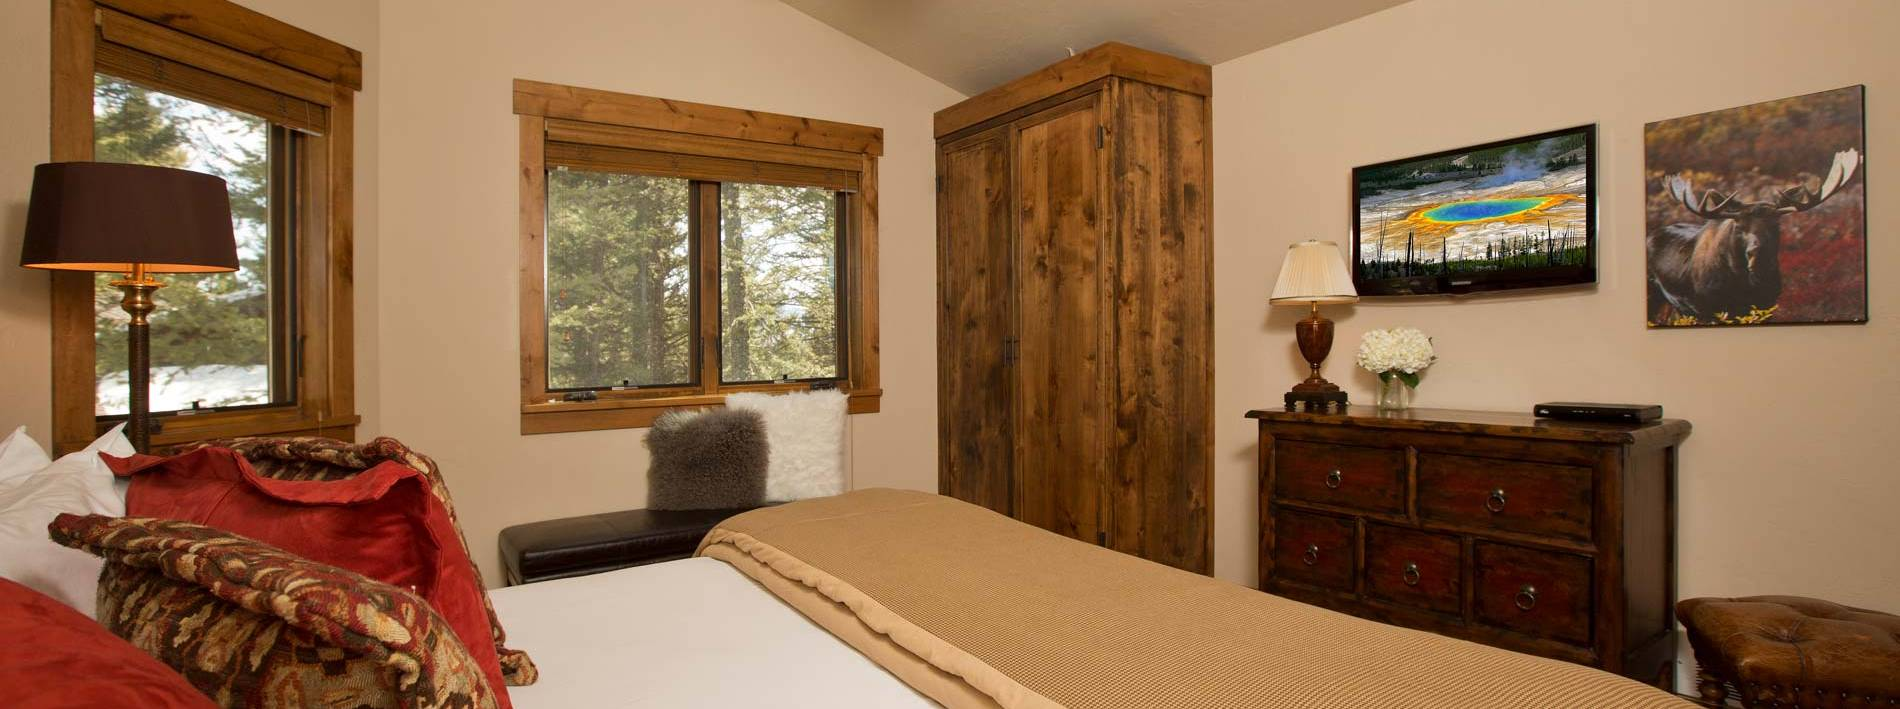 Spacious king bedroom in the Blue Moose Lodge in Teton Village